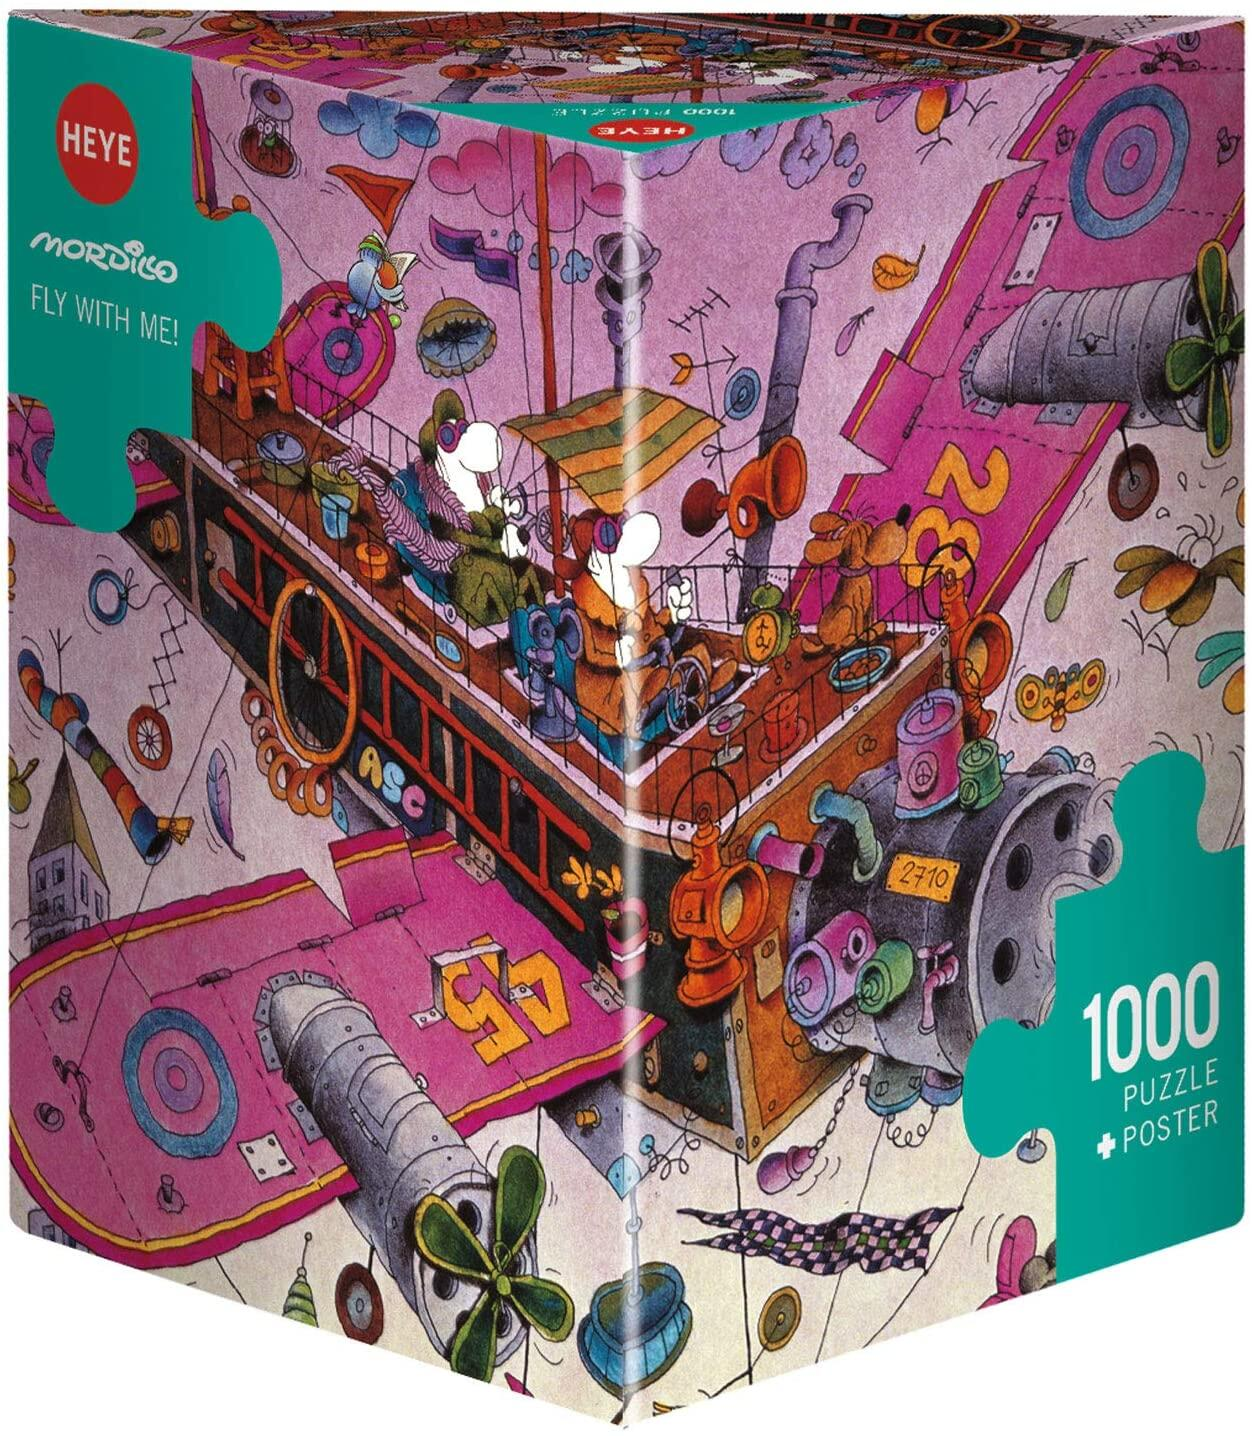 HEYE Puzzle 1000 Teile Mordillo Fly With Me